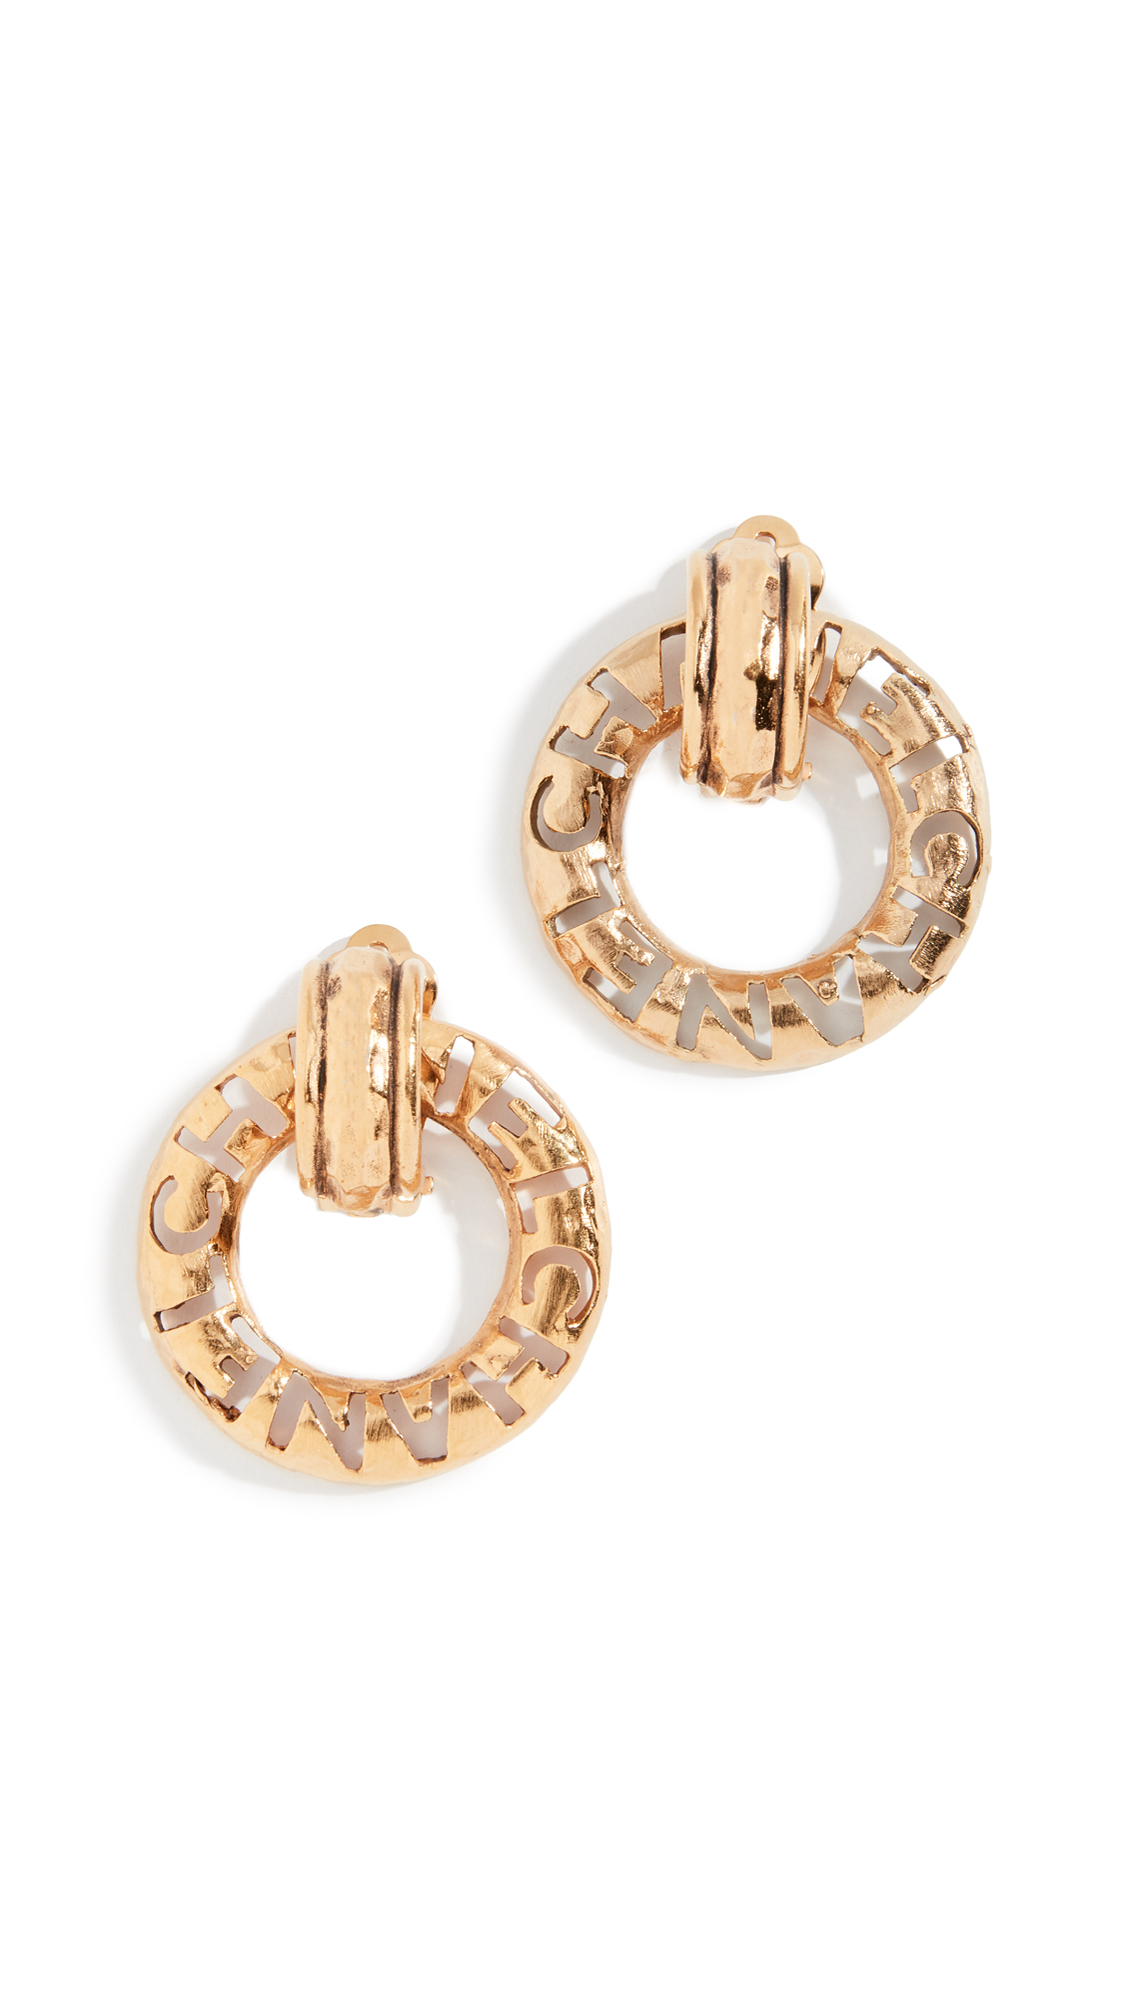 WHAT GOES AROUND COMES AROUND Chanel Cc Cross Dangle Clip On Earrings in Yellow Gold